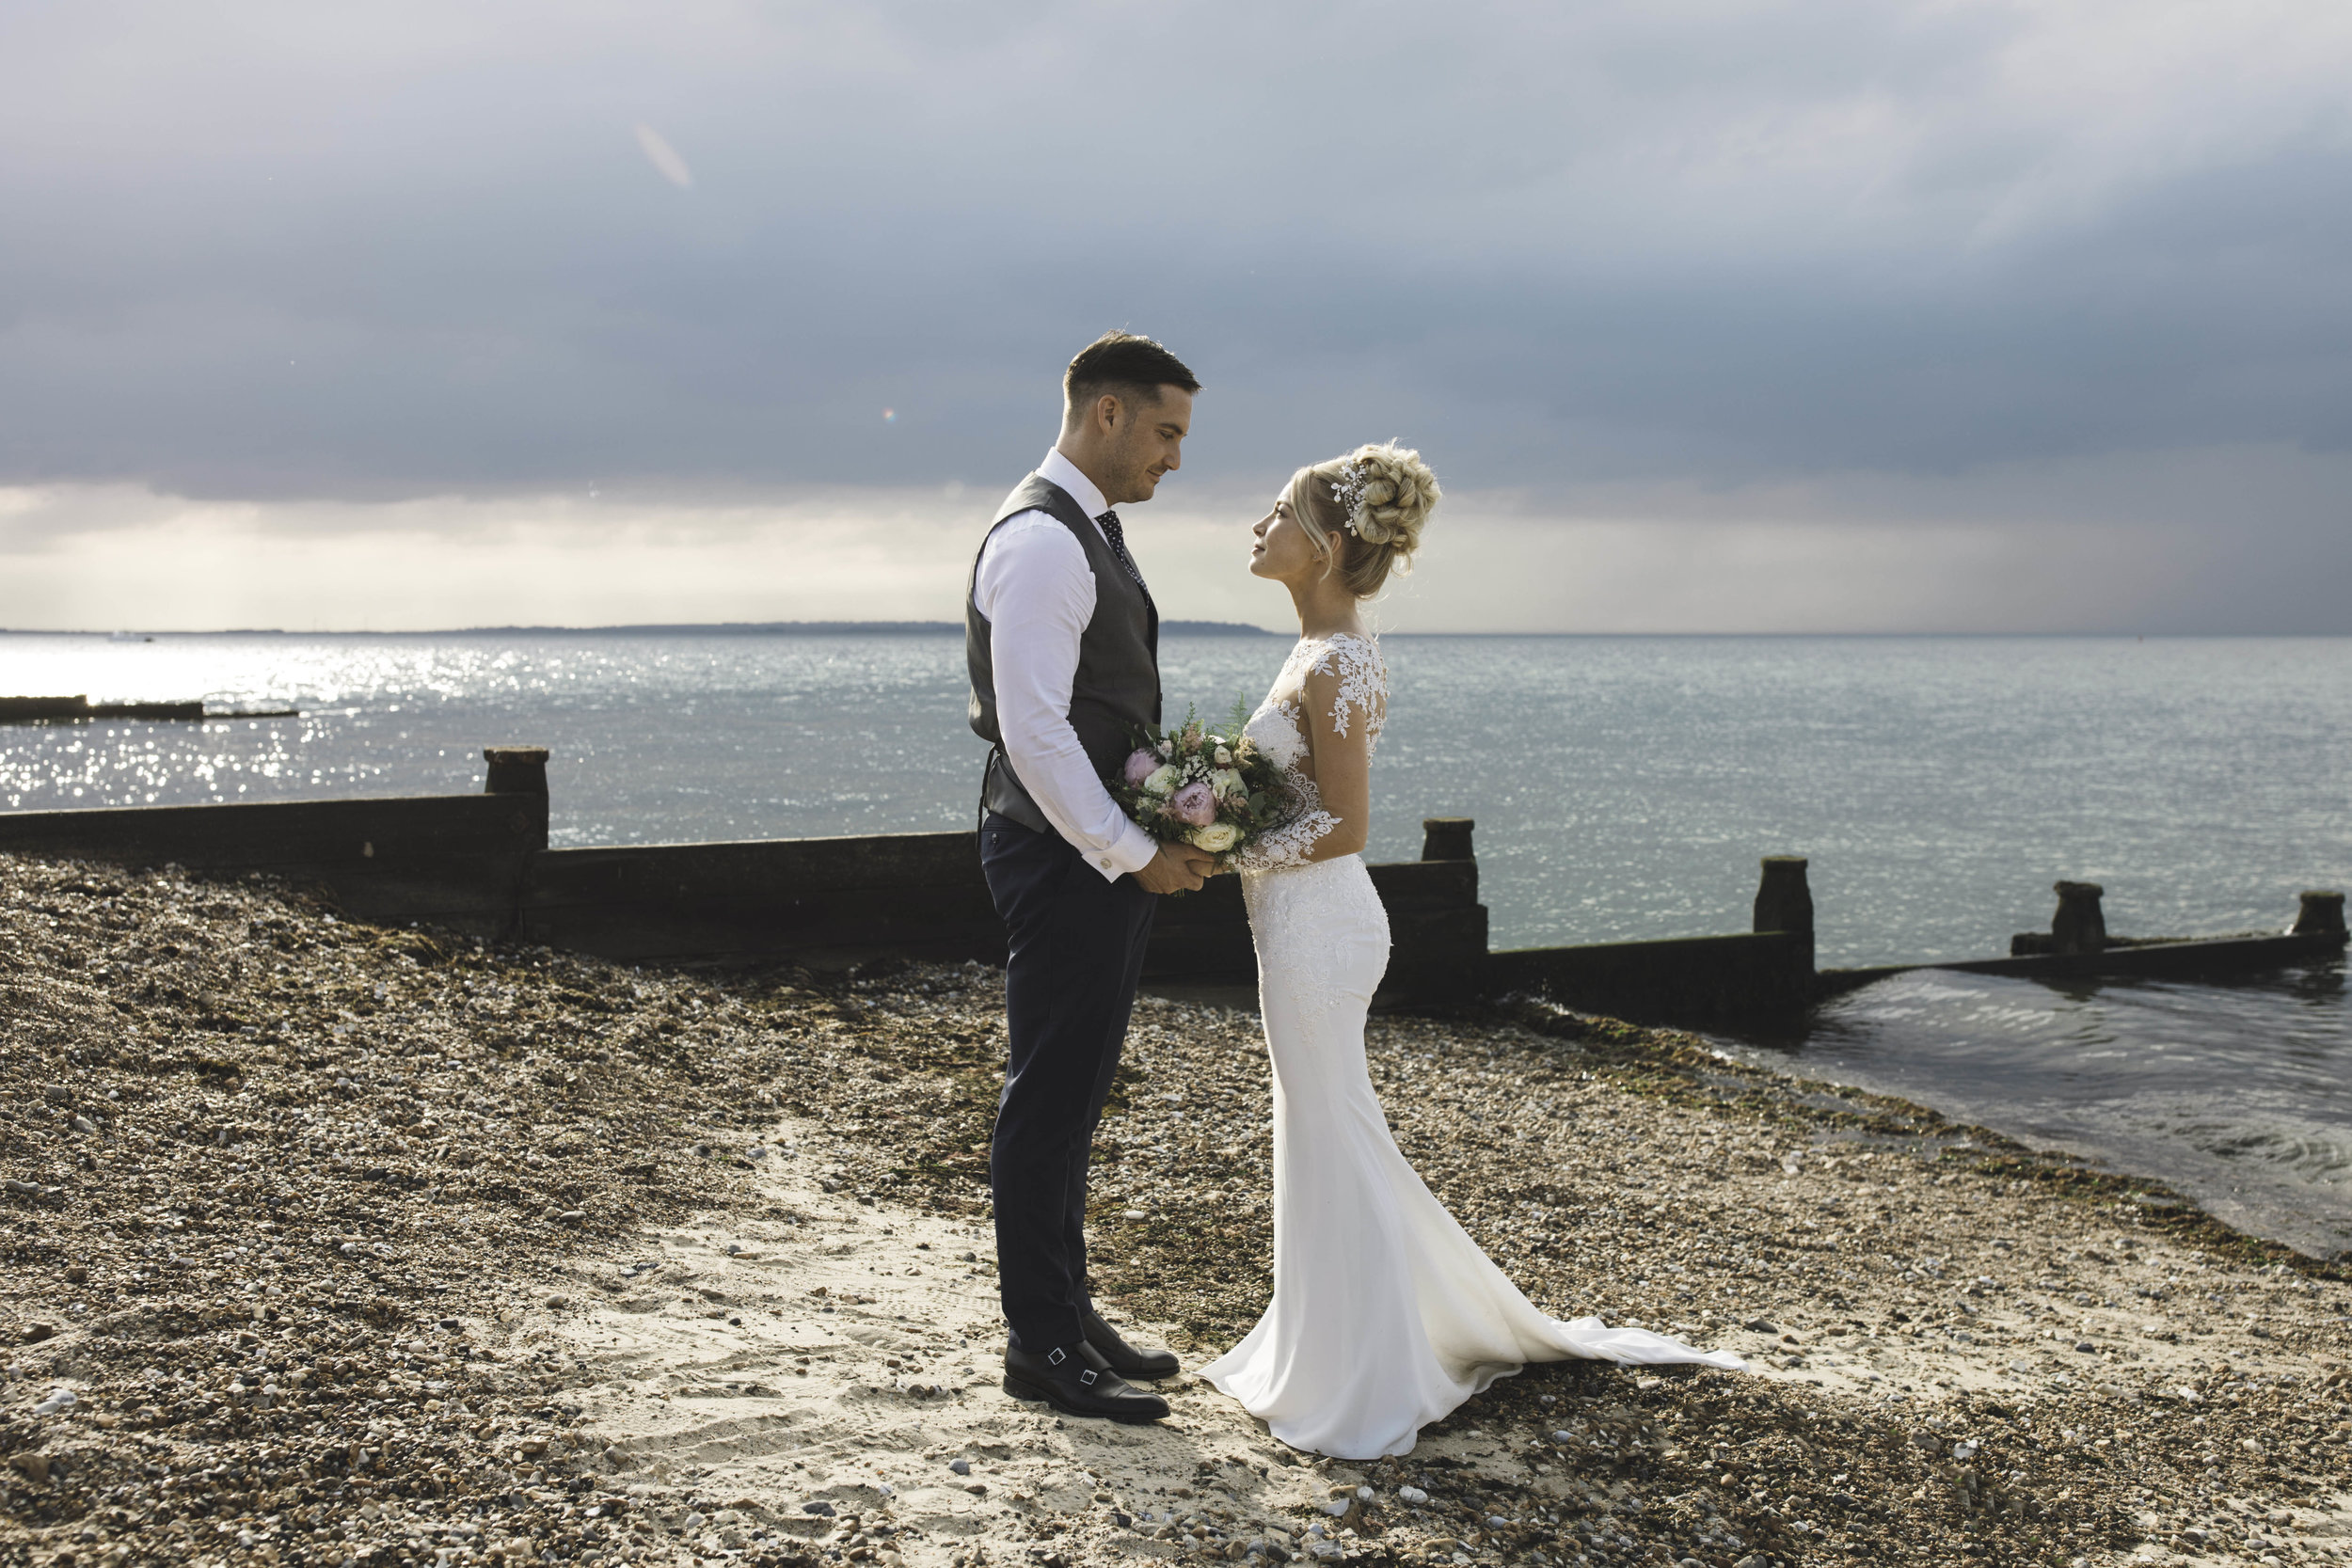 thanet wedding photographer james davies